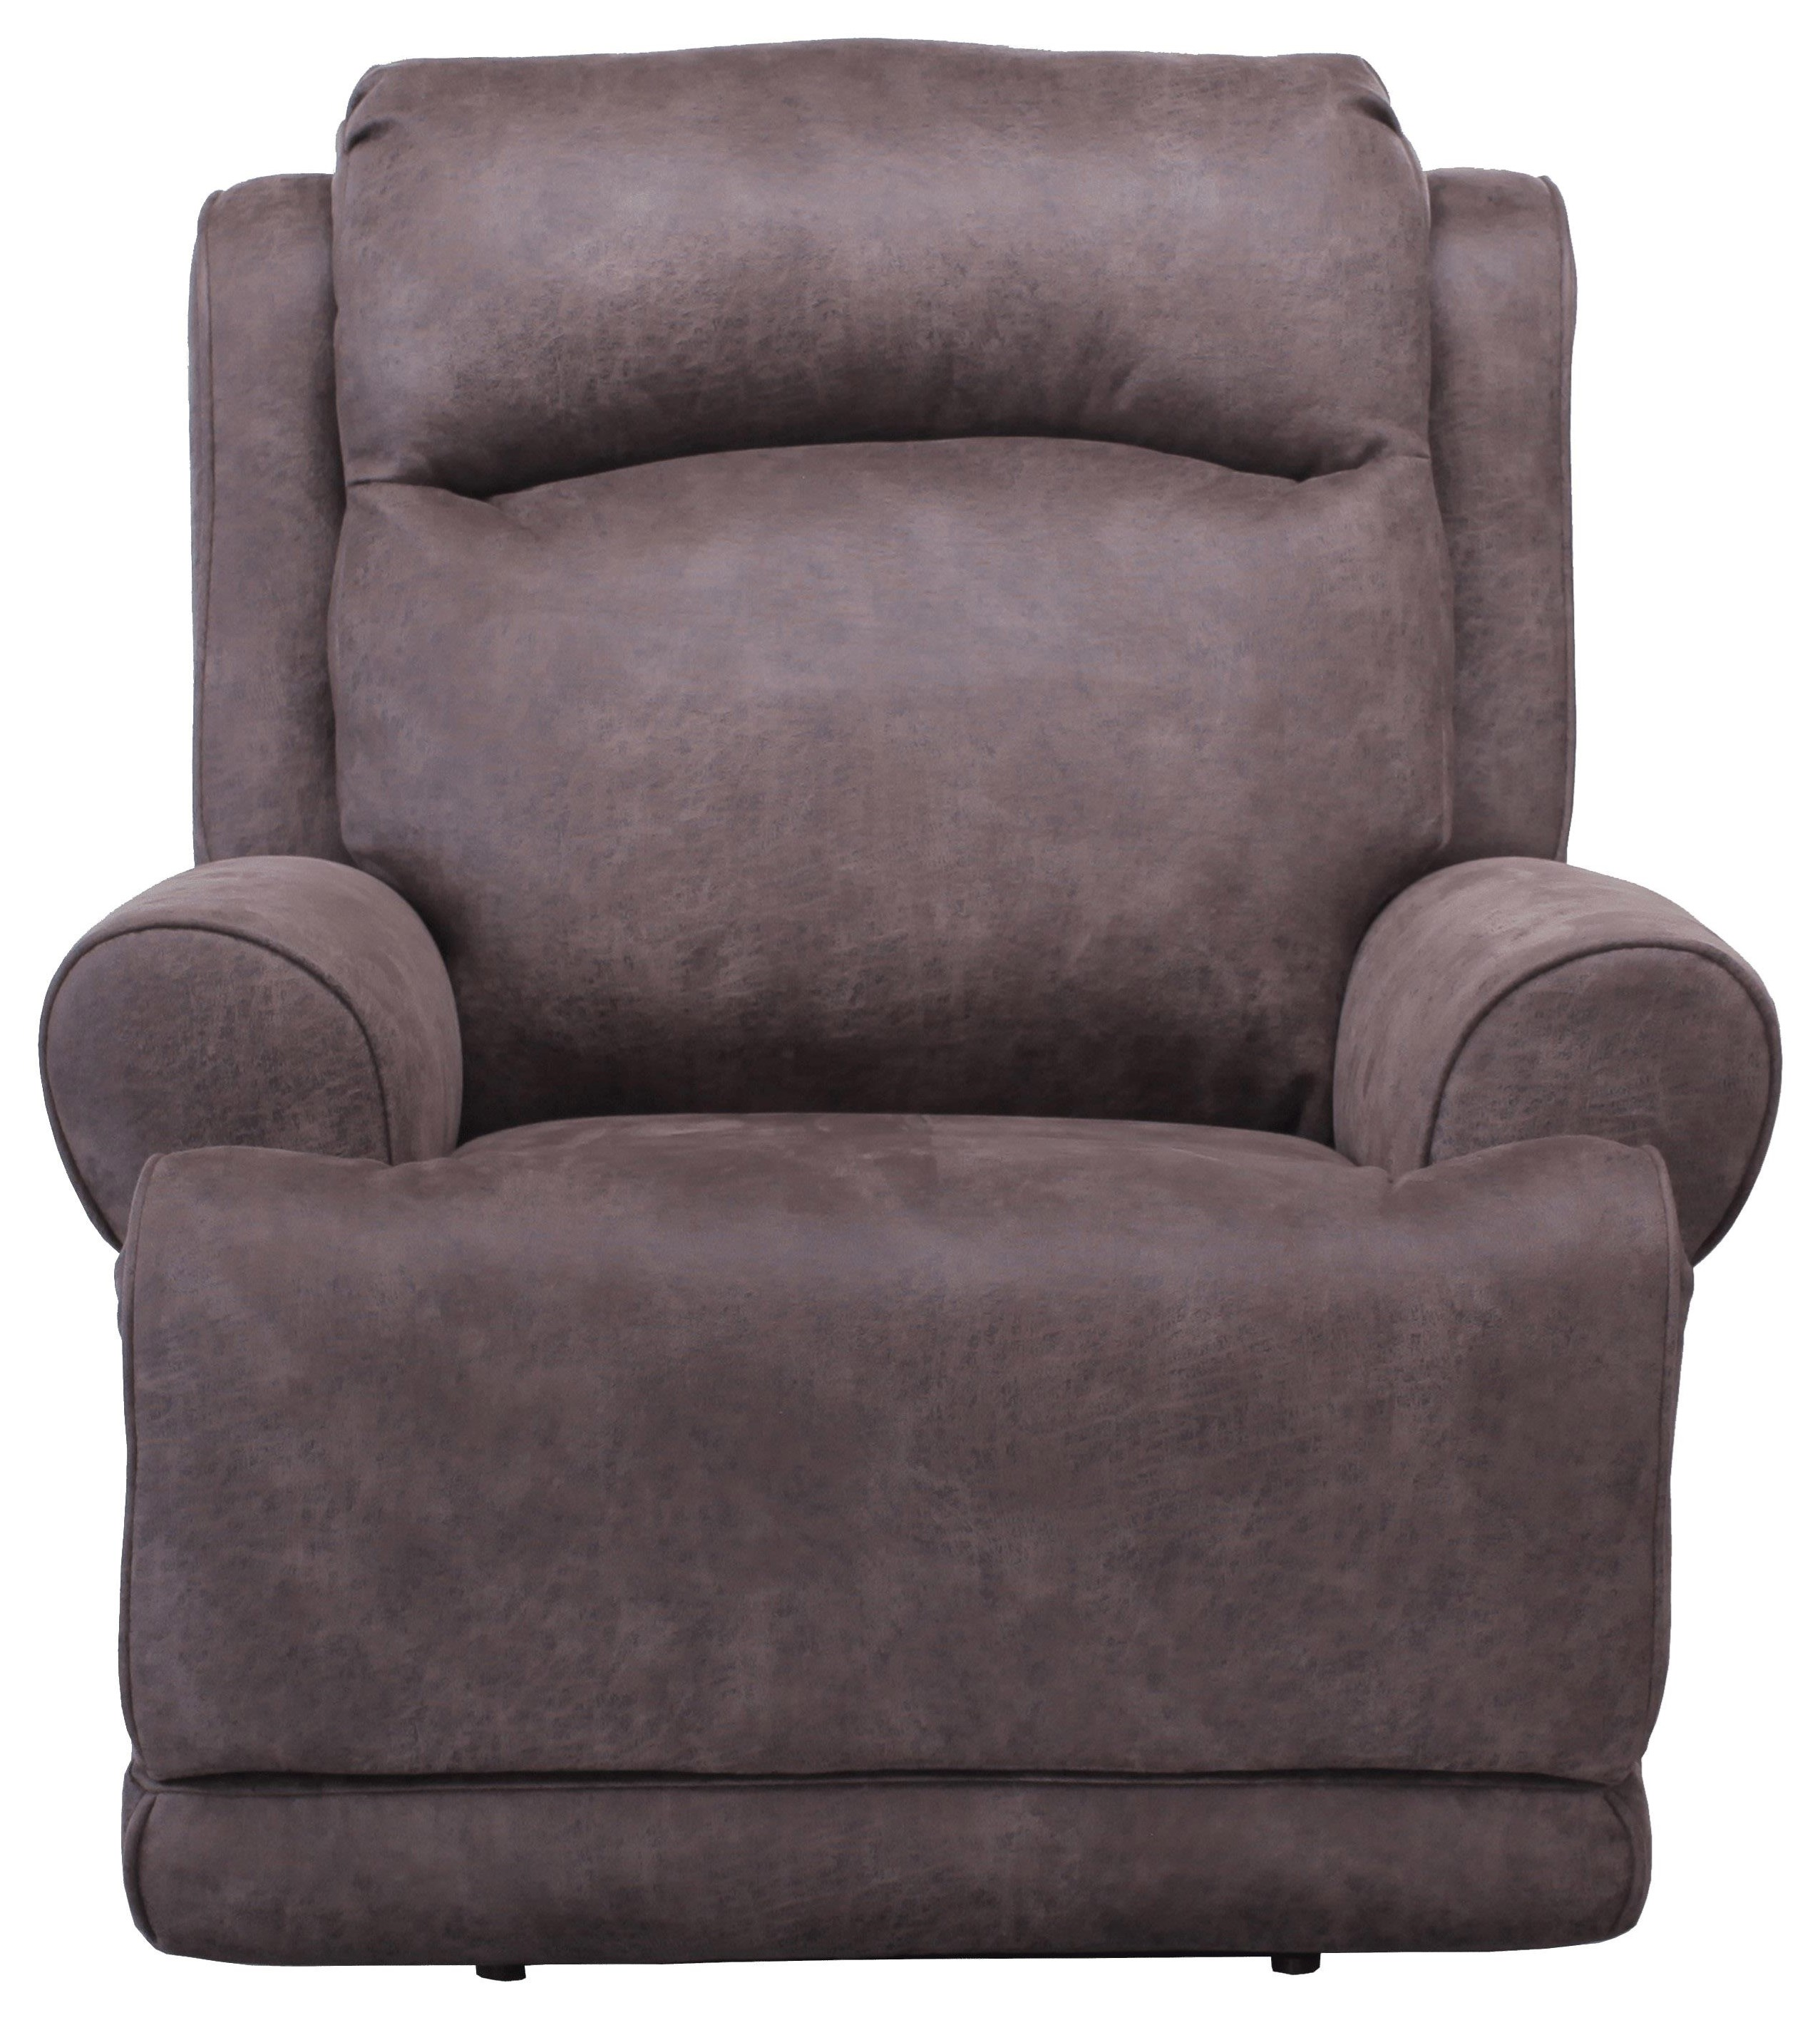 Southern Motion Socozi Massage And Heat Power Recliner